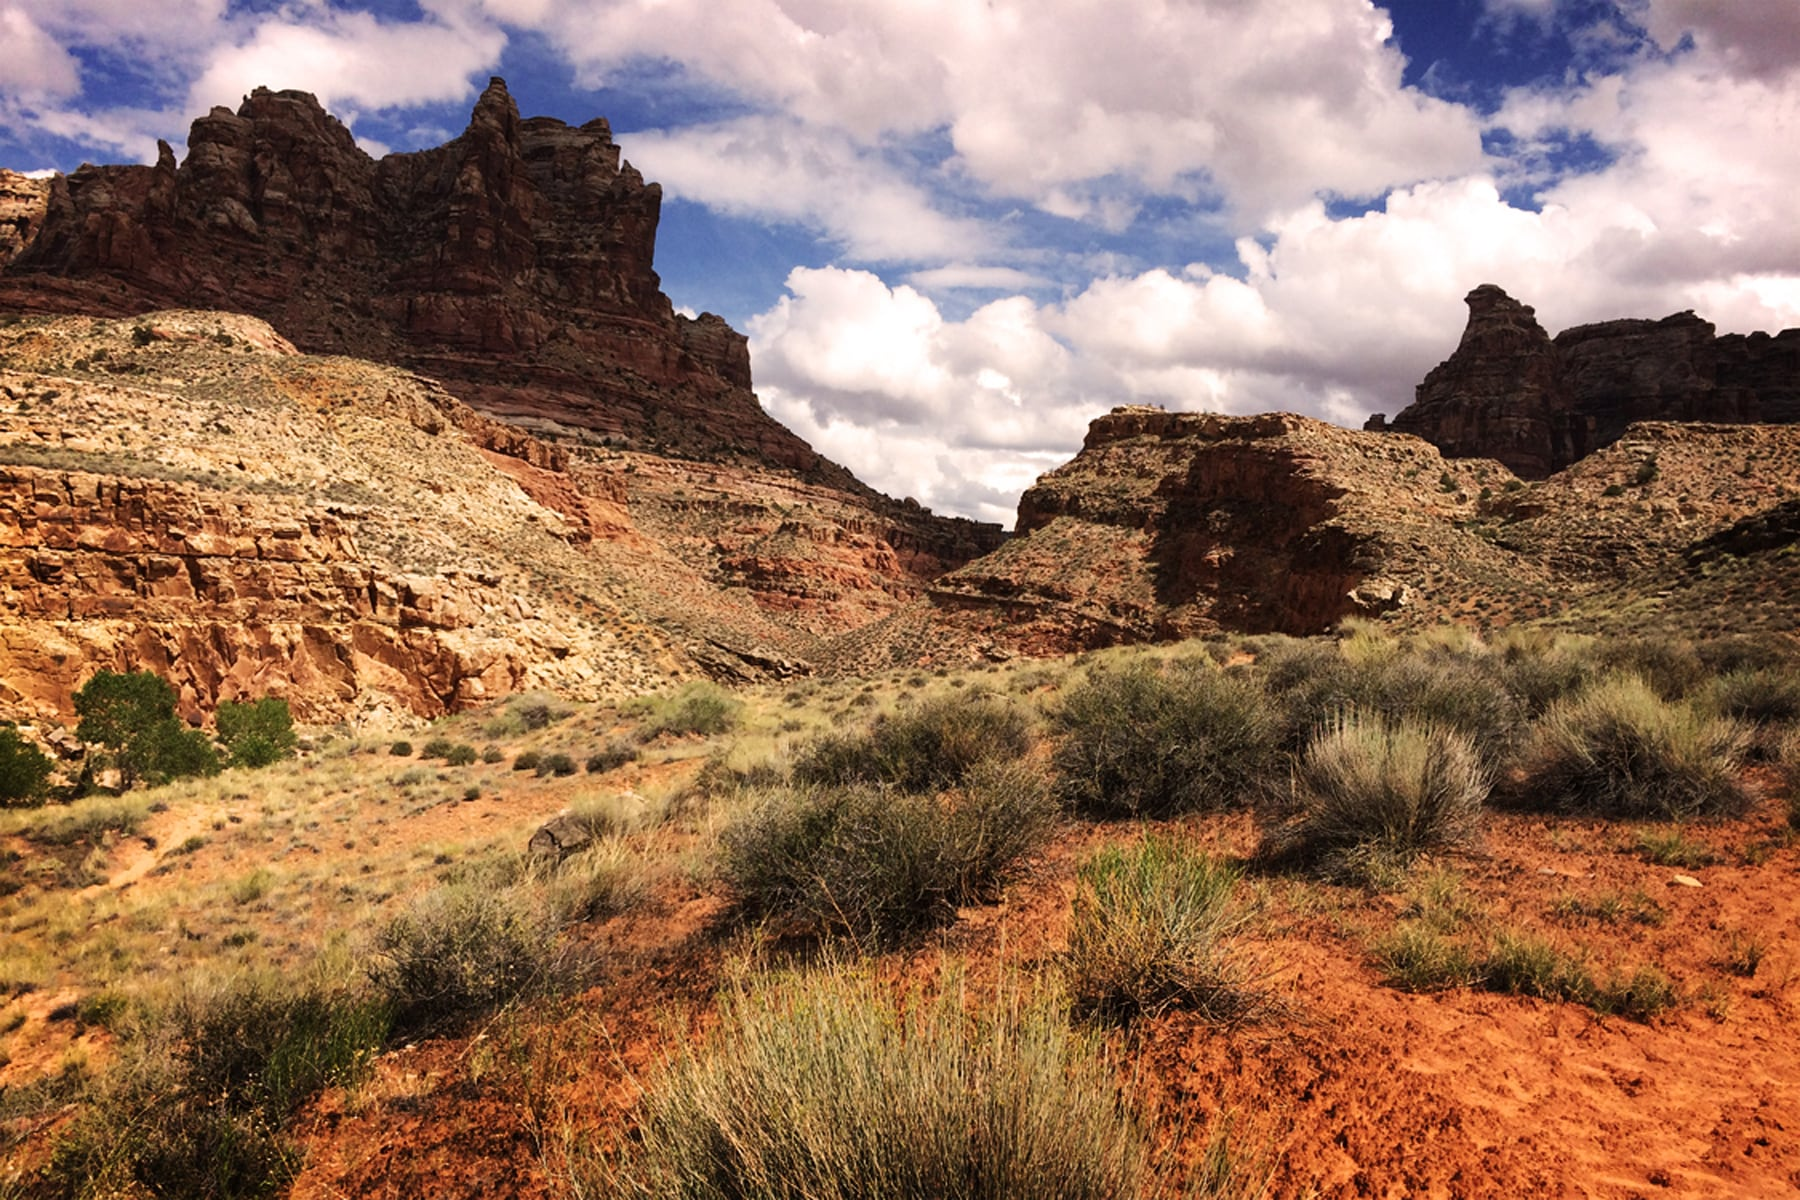 Dark Canyon Crenellations